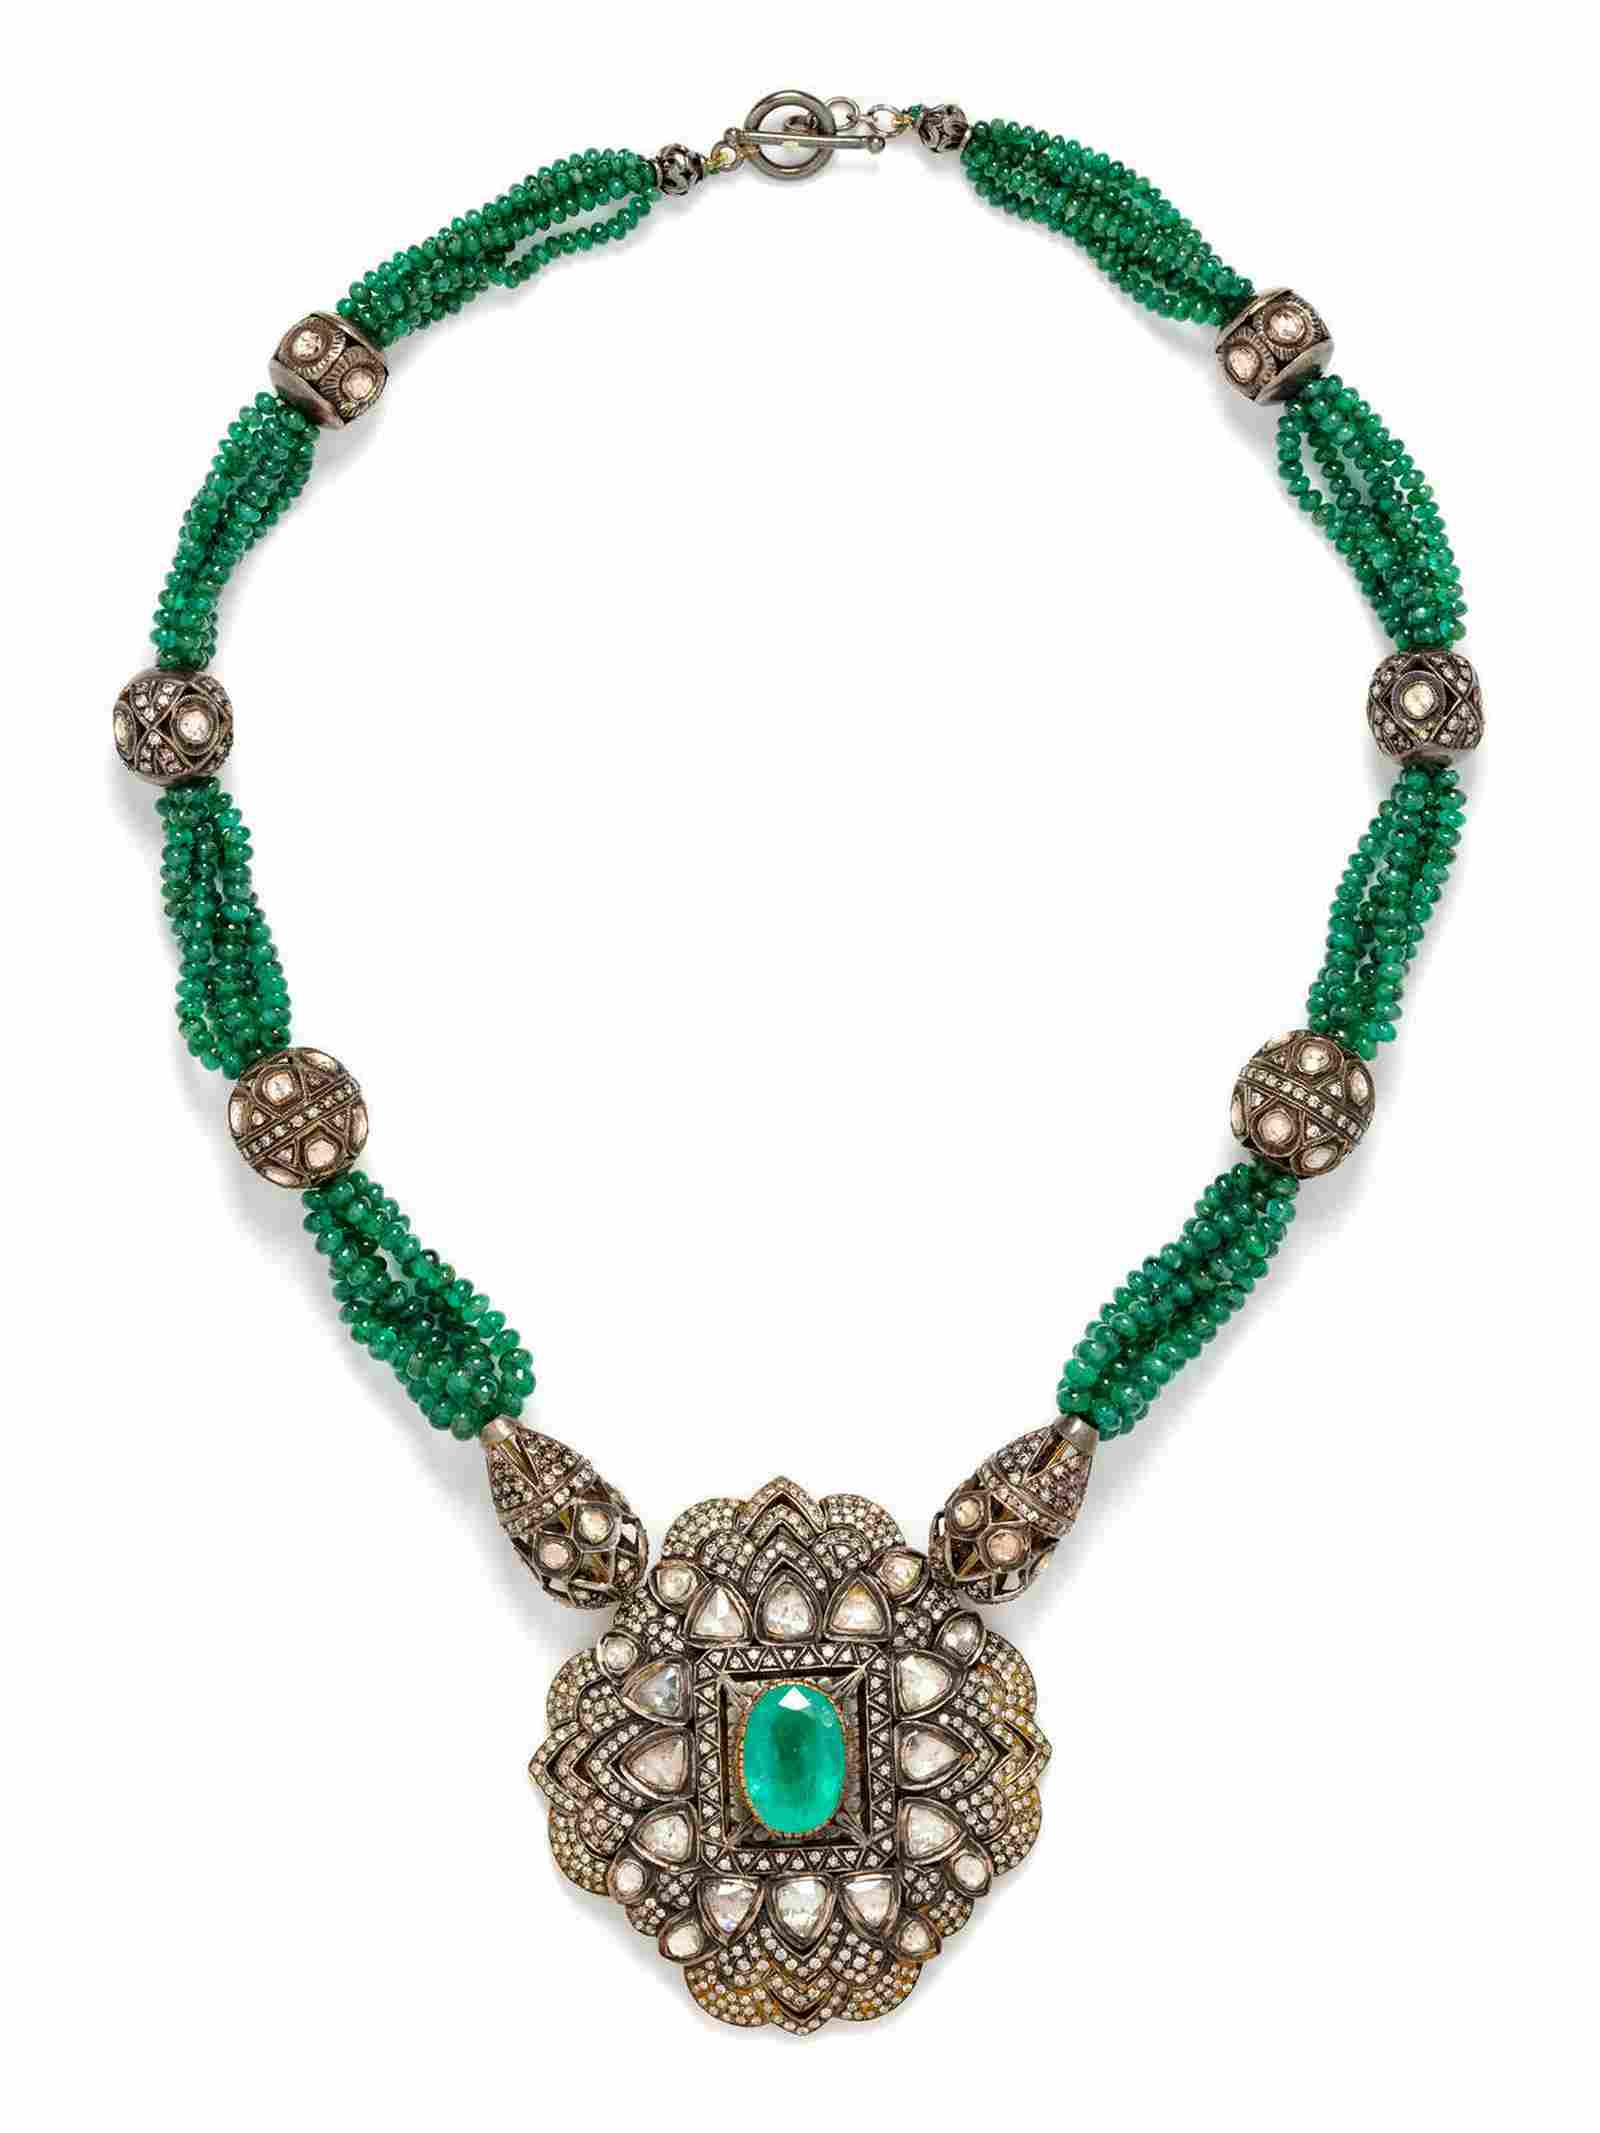 A Silver Topped Gold, Diamond and Emerald Bead